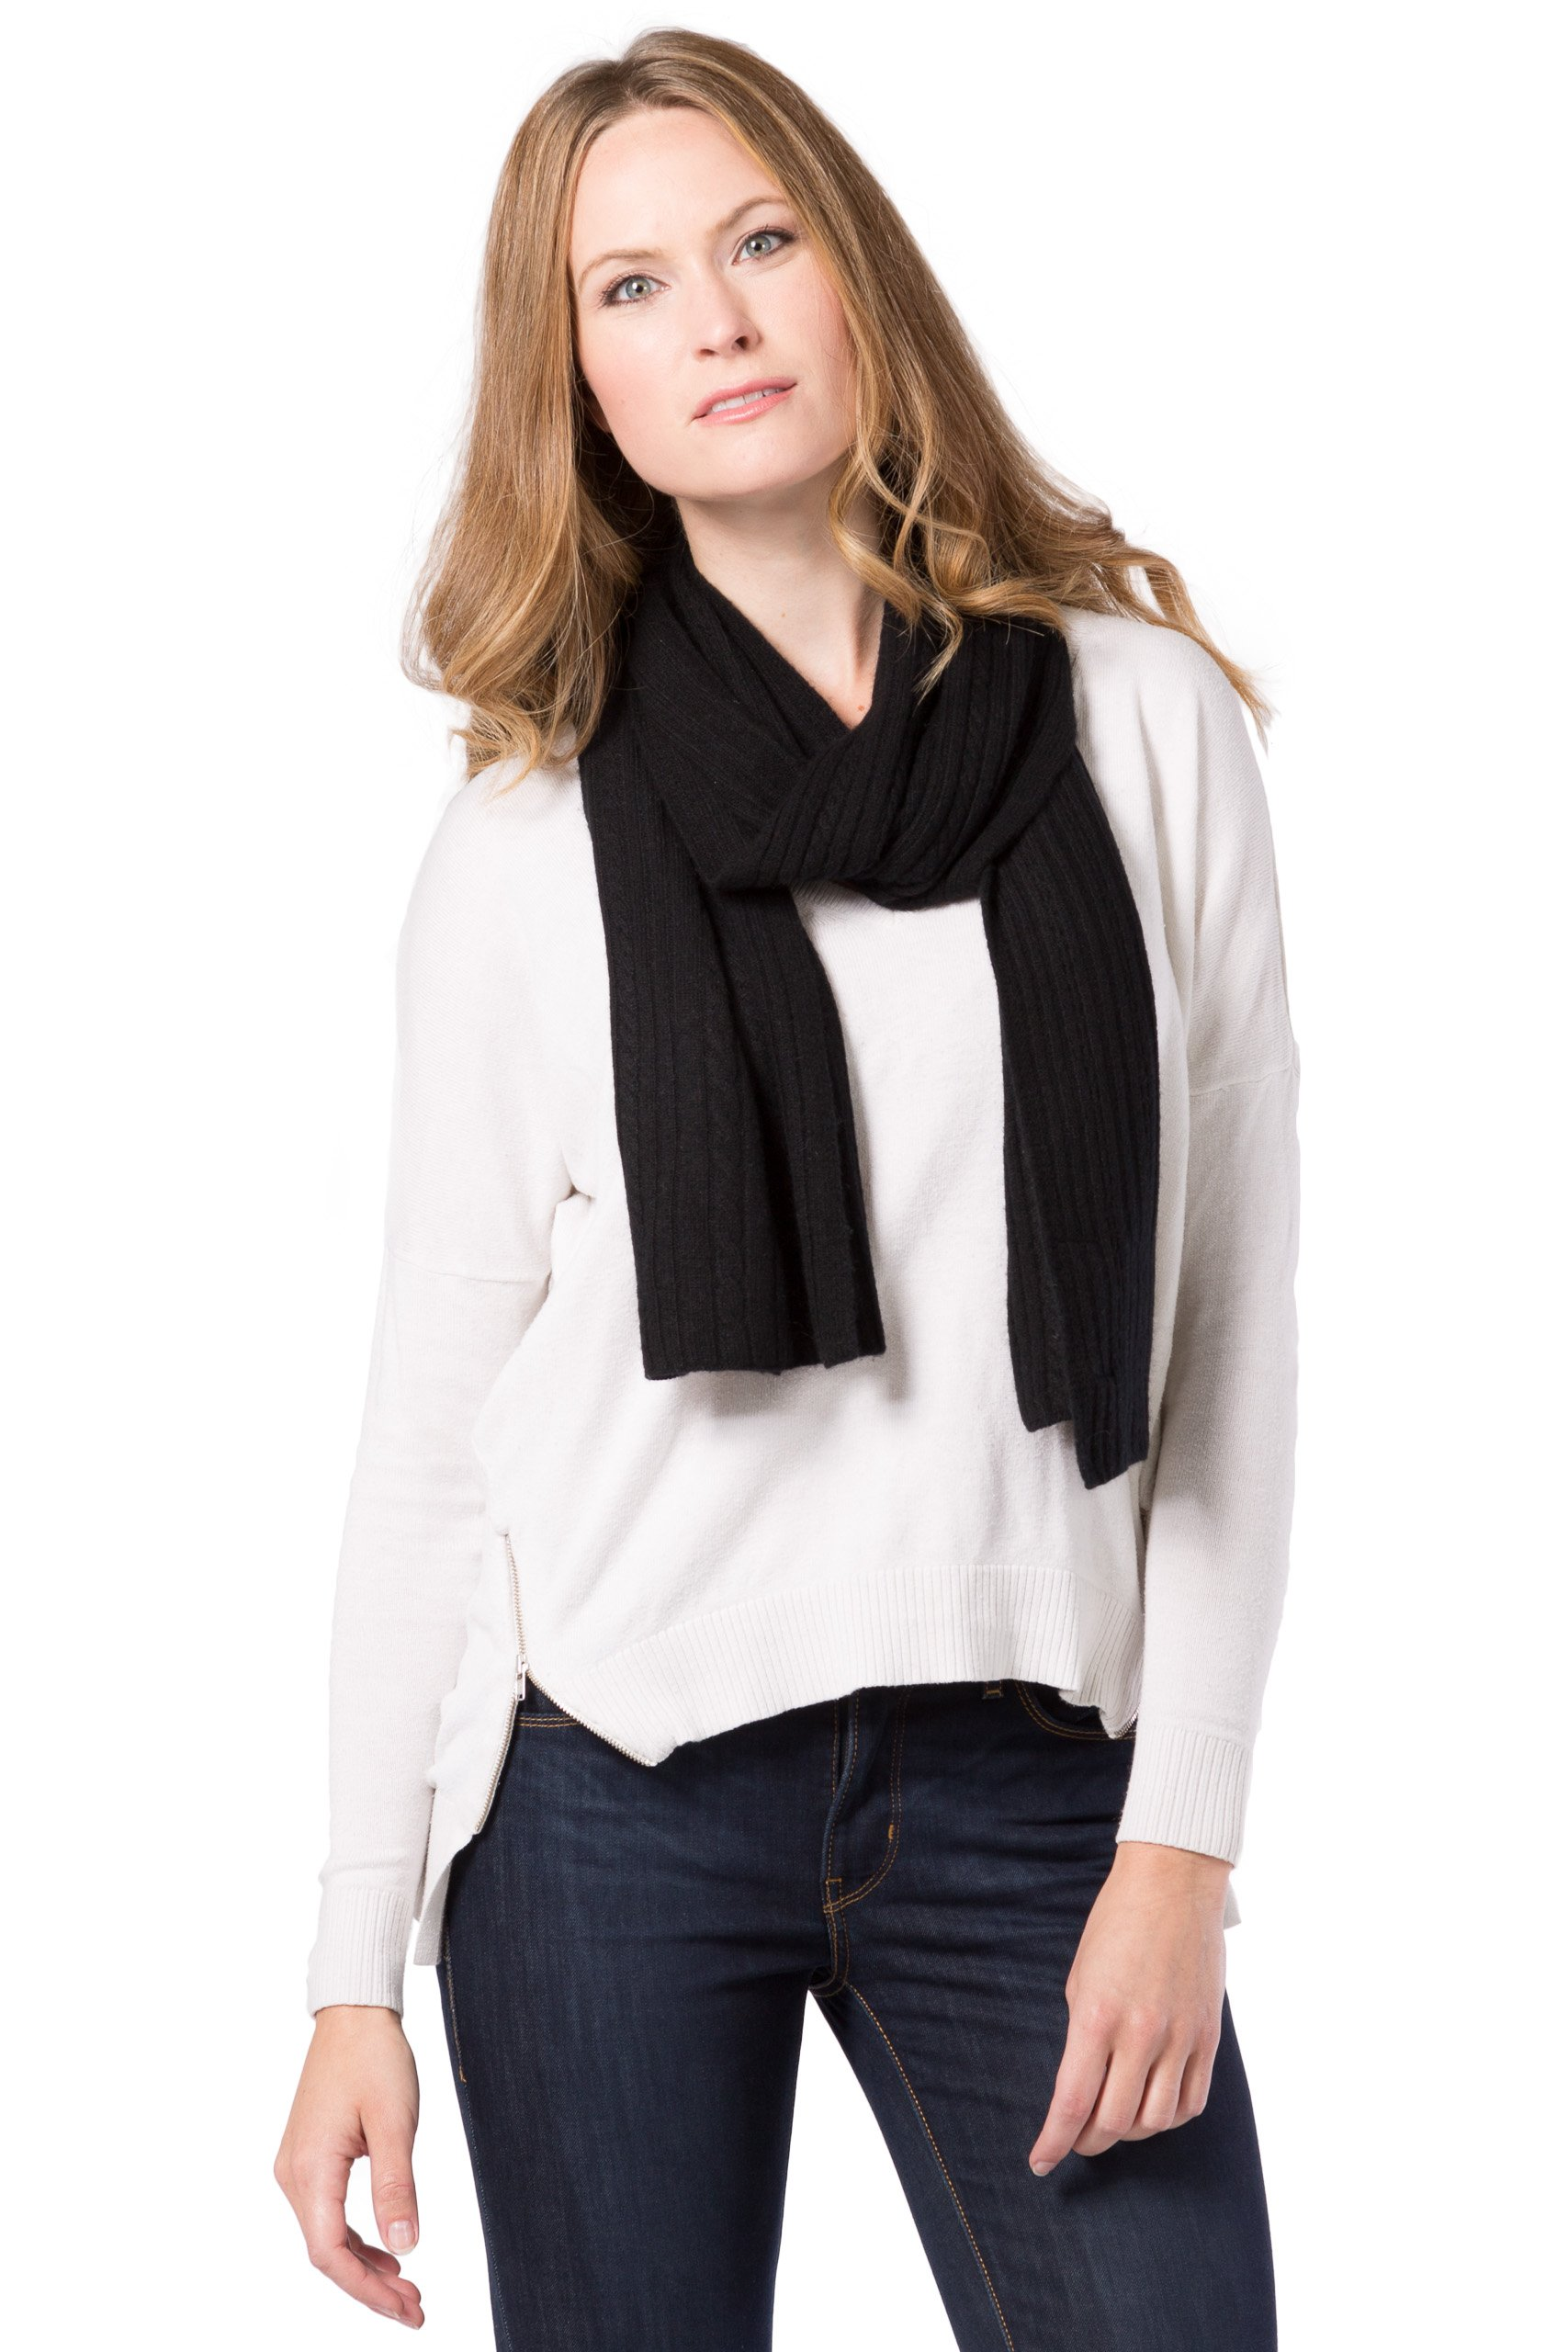 Fishers Finery Women's Cashmere Cable Knitted Scarf; Christmas Gift (Black)